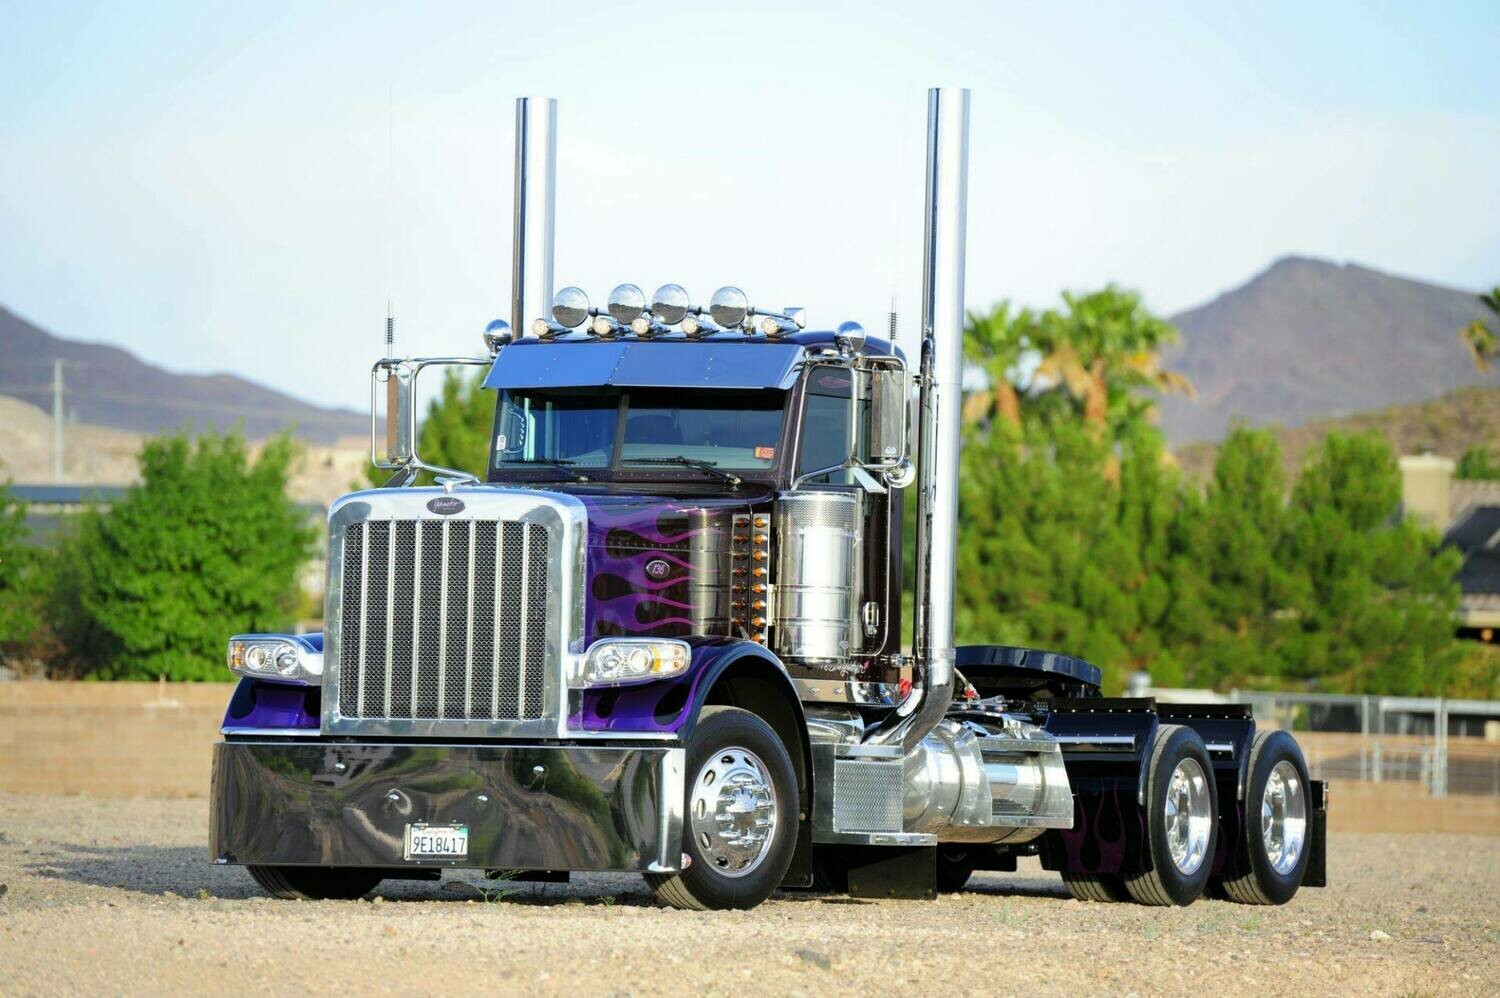 Big Trucks 16 - Full Drill Diamond Painting - Specially ordered for you. Delivery is approximately 4 - 6 weeks.